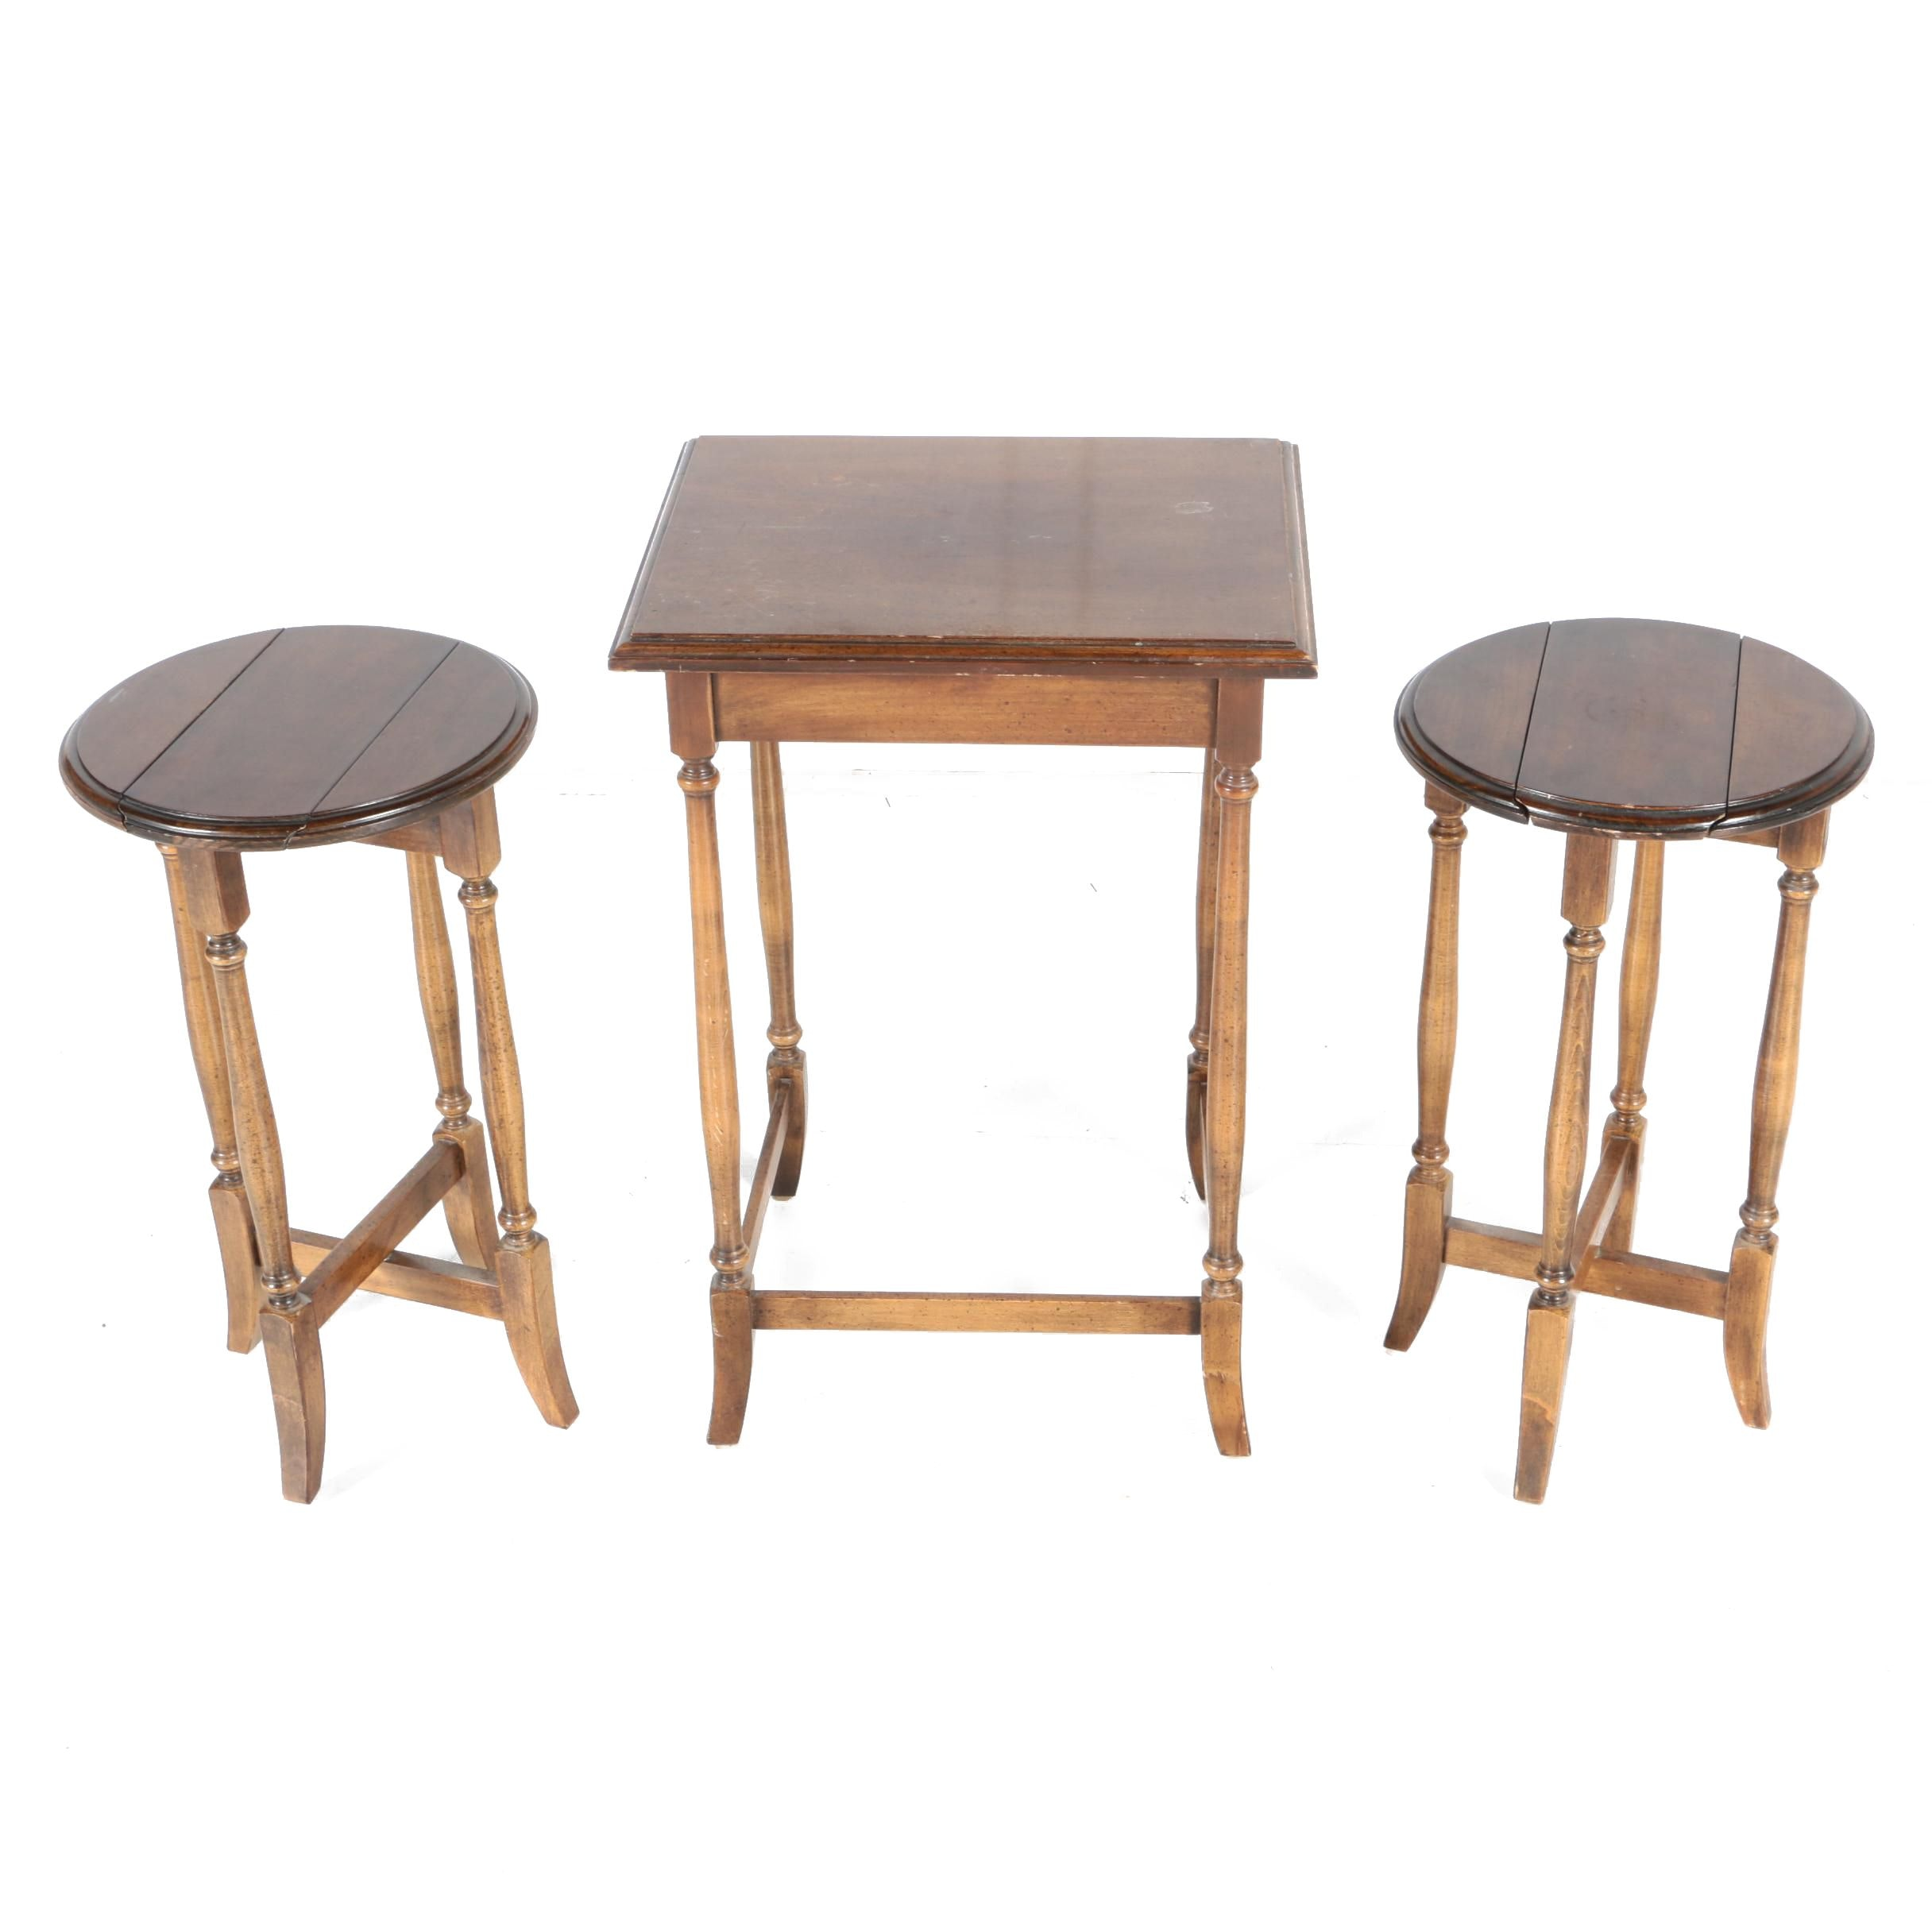 Three-Piece Set of Vintage Wood Side Tables